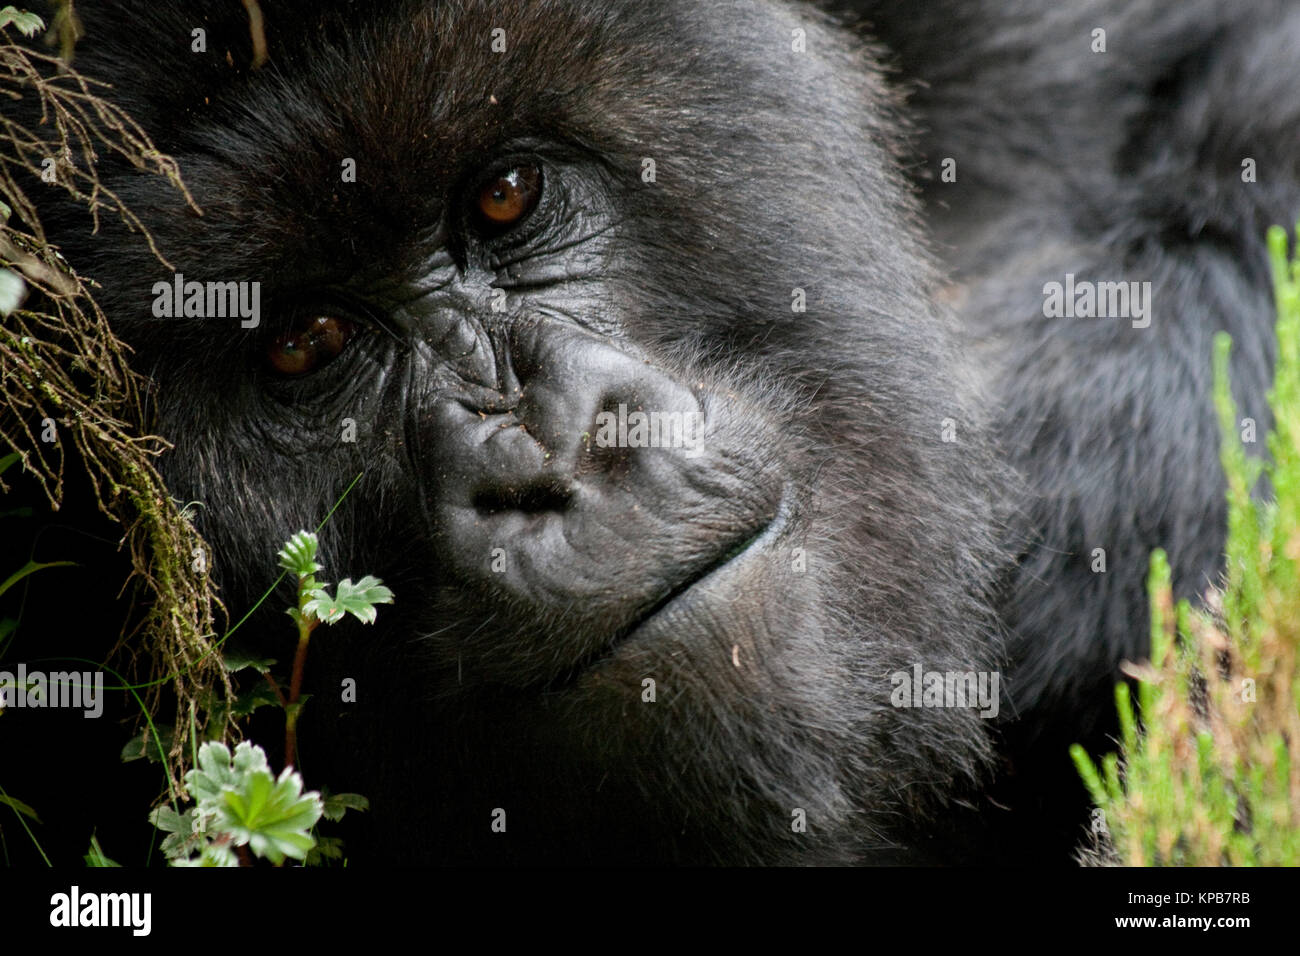 Close up portrait of a mountain gorilla in Rwanda - Stock Image